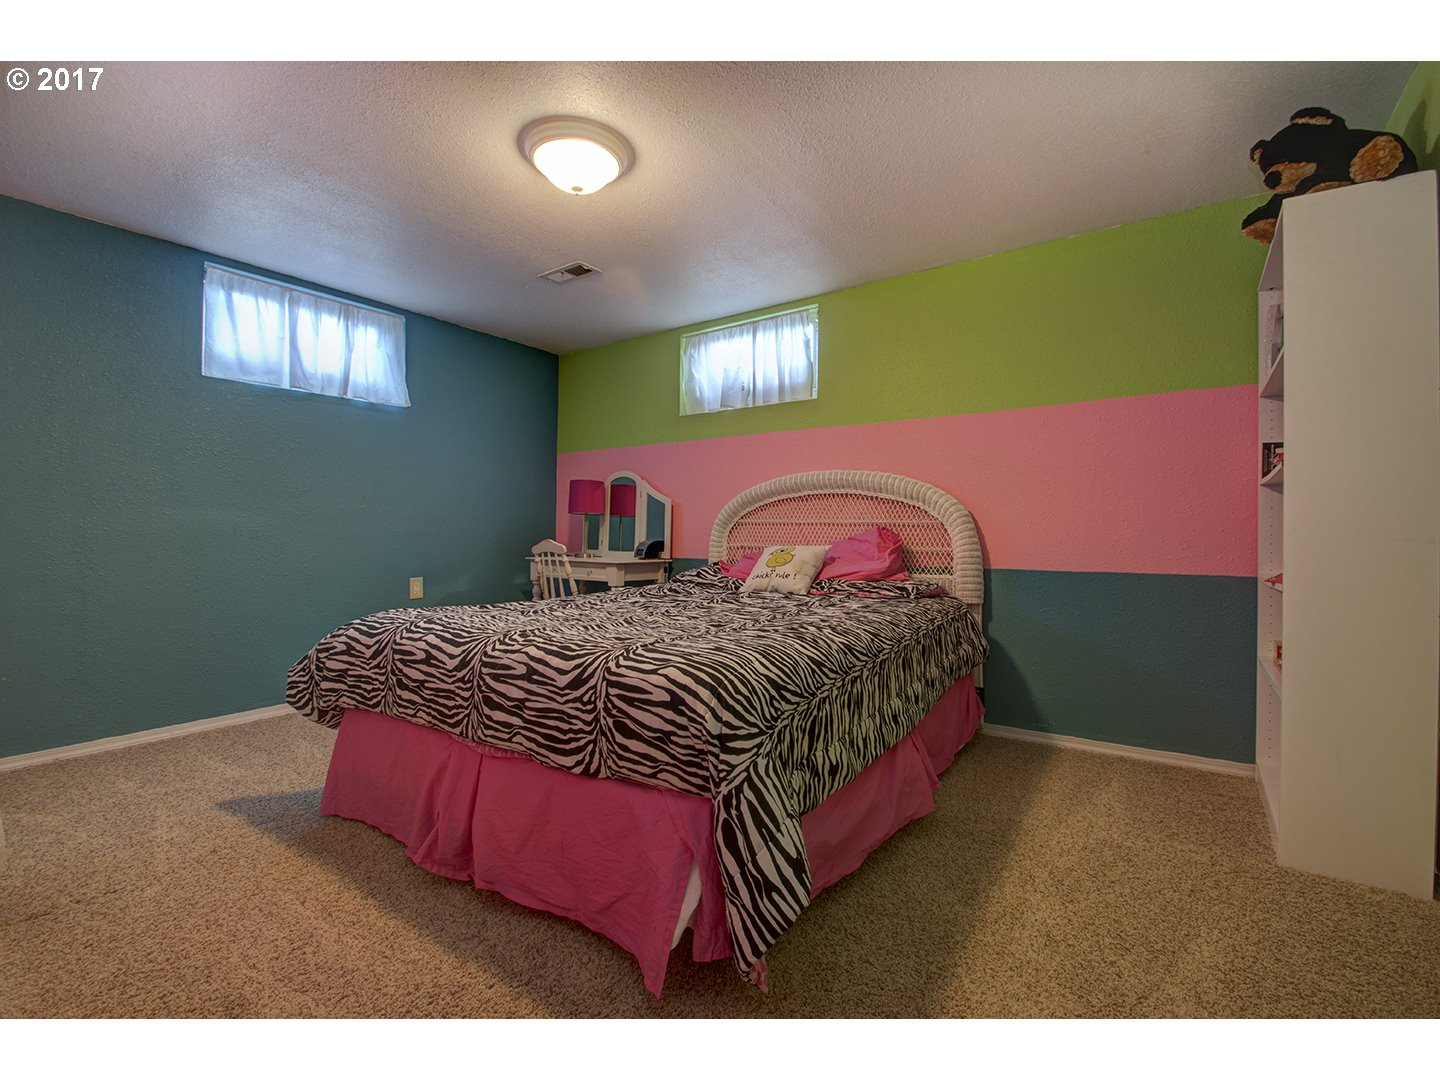 1111 NW 49TH ST Vancouver, WA 98663 - MLS #: 17507079